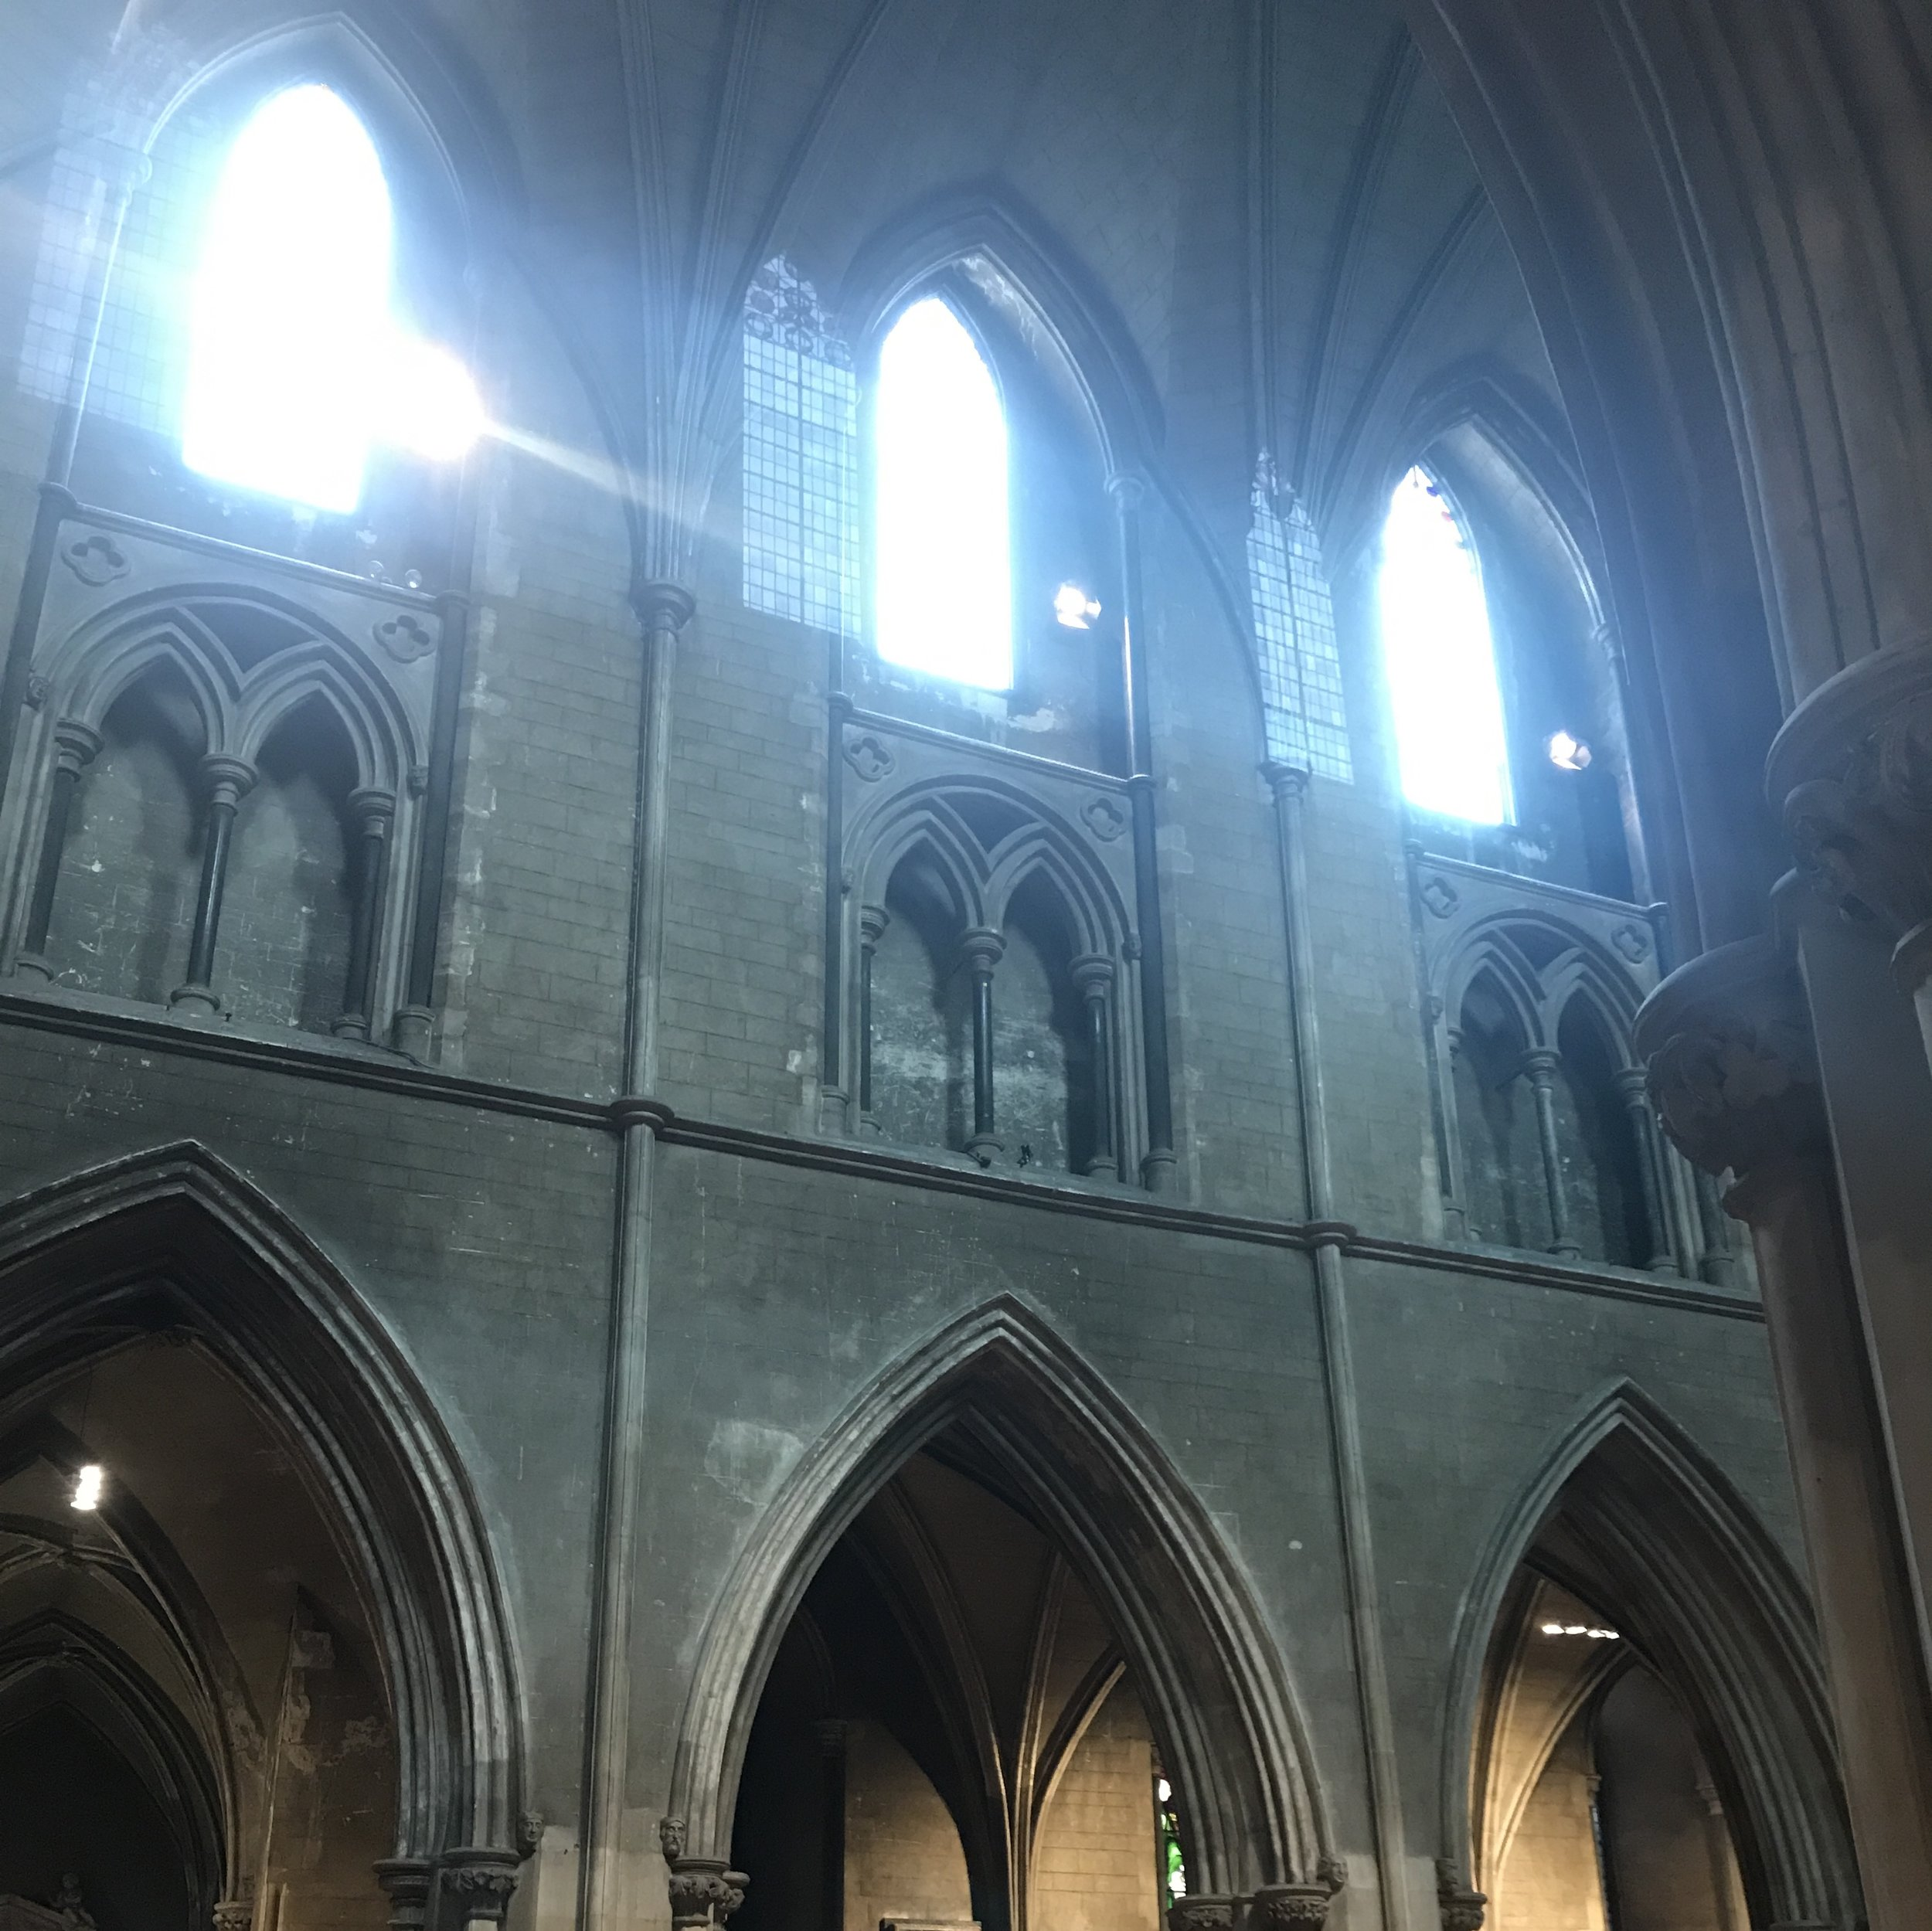 Windows from St. Patrick's Anglican Cathedral